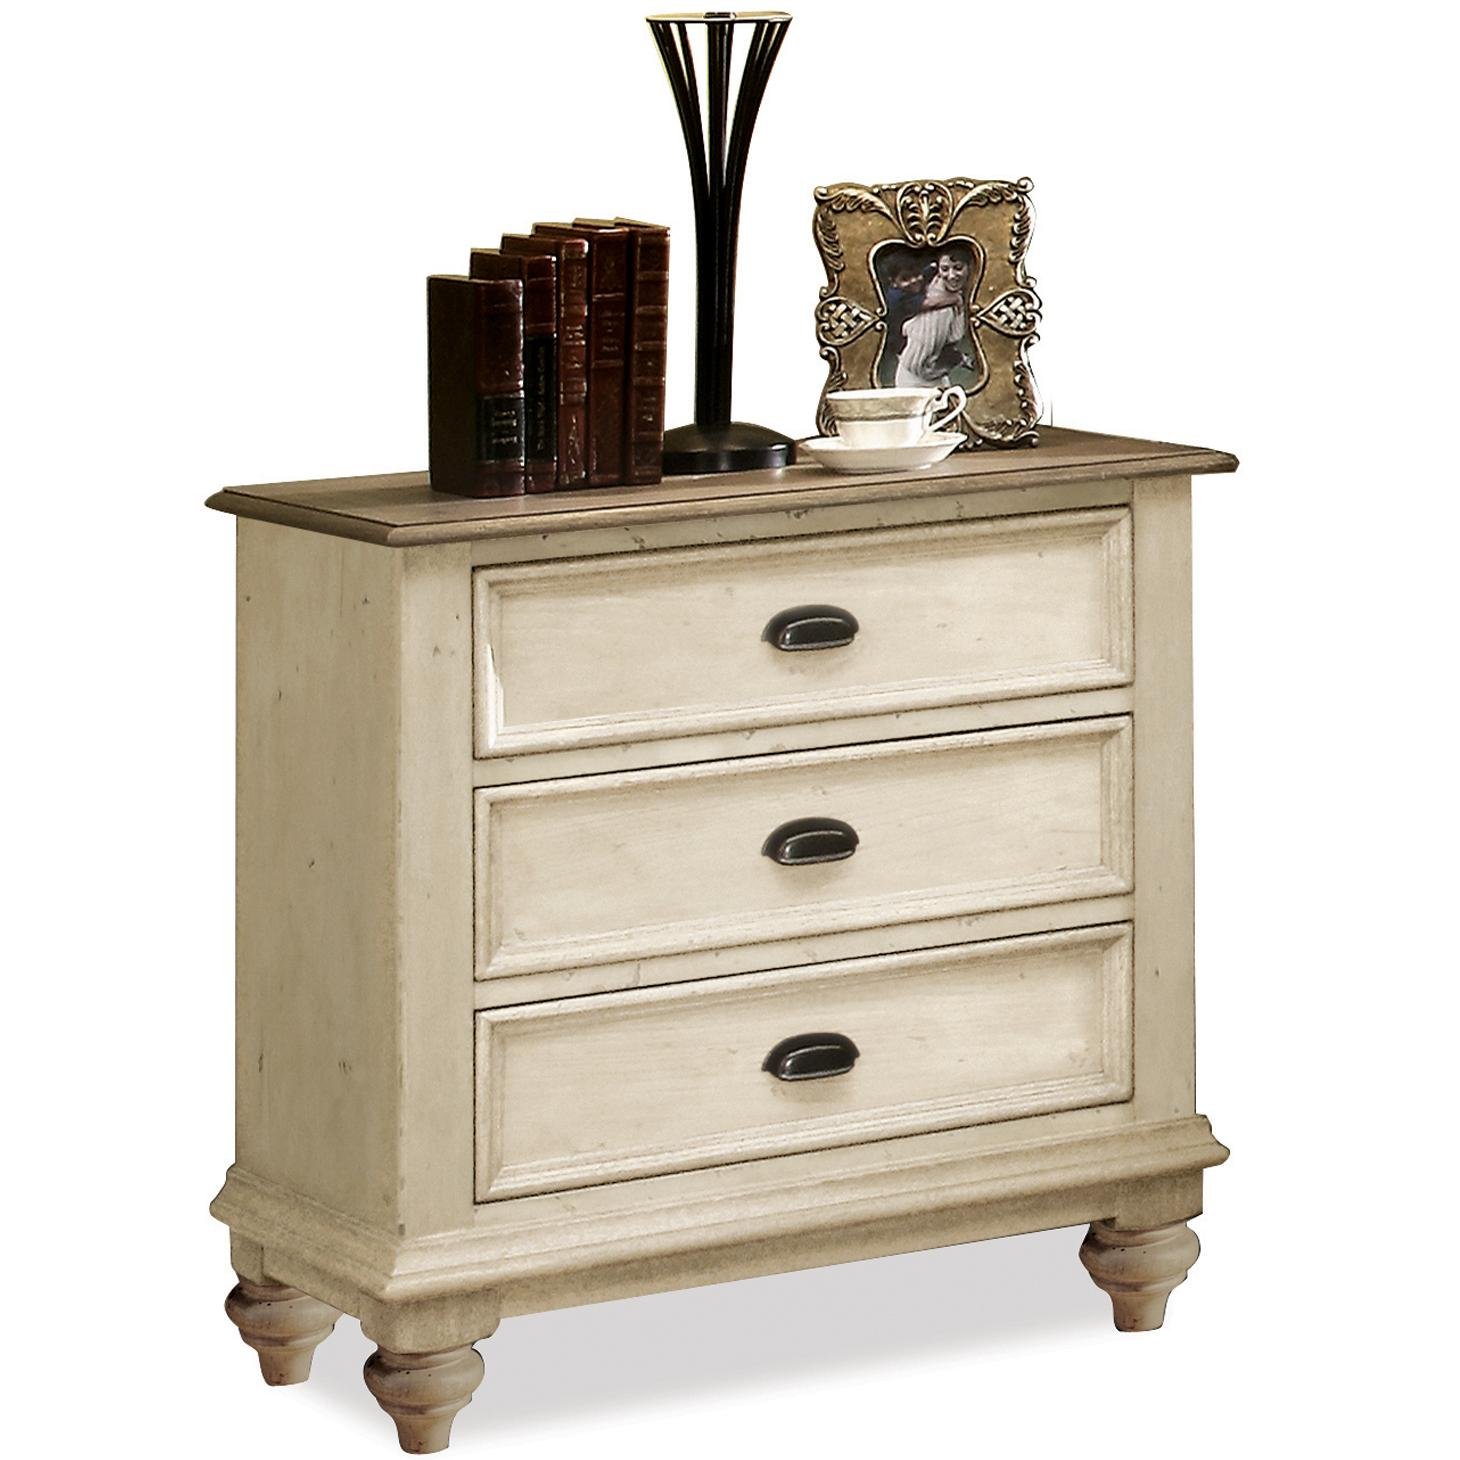 Riverside Furniture Coventry Two Tone 3-Drawer Night Stand - Item Number: 32568